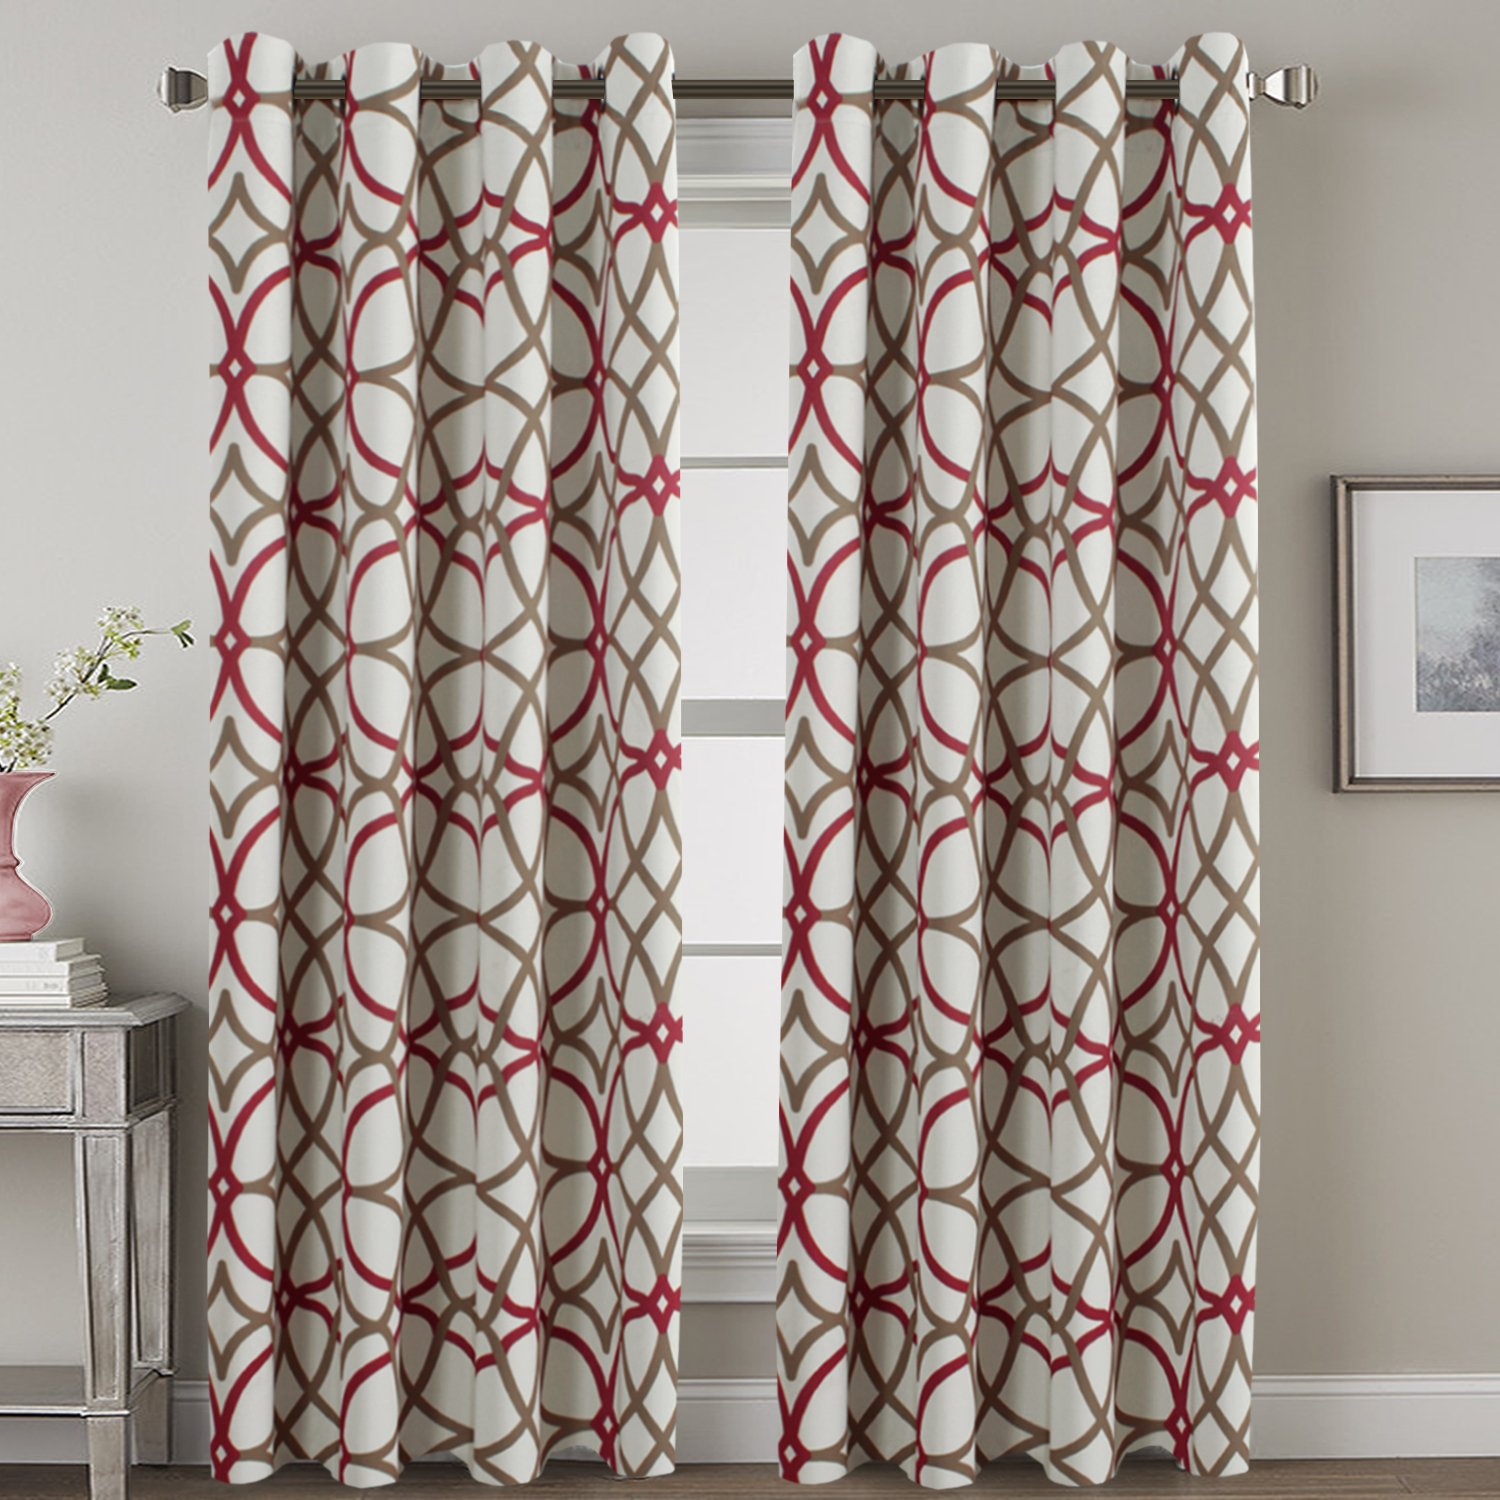 "H.VERSAILTEX Print Thermal Blackout Curtains Living Room Curtains 108 inches Long Grommet Window Treatment Curtains for Sliding Glass Door Elegant Taupe and Red Geo Pattern - Set of 2-52"" W x 108"" L"